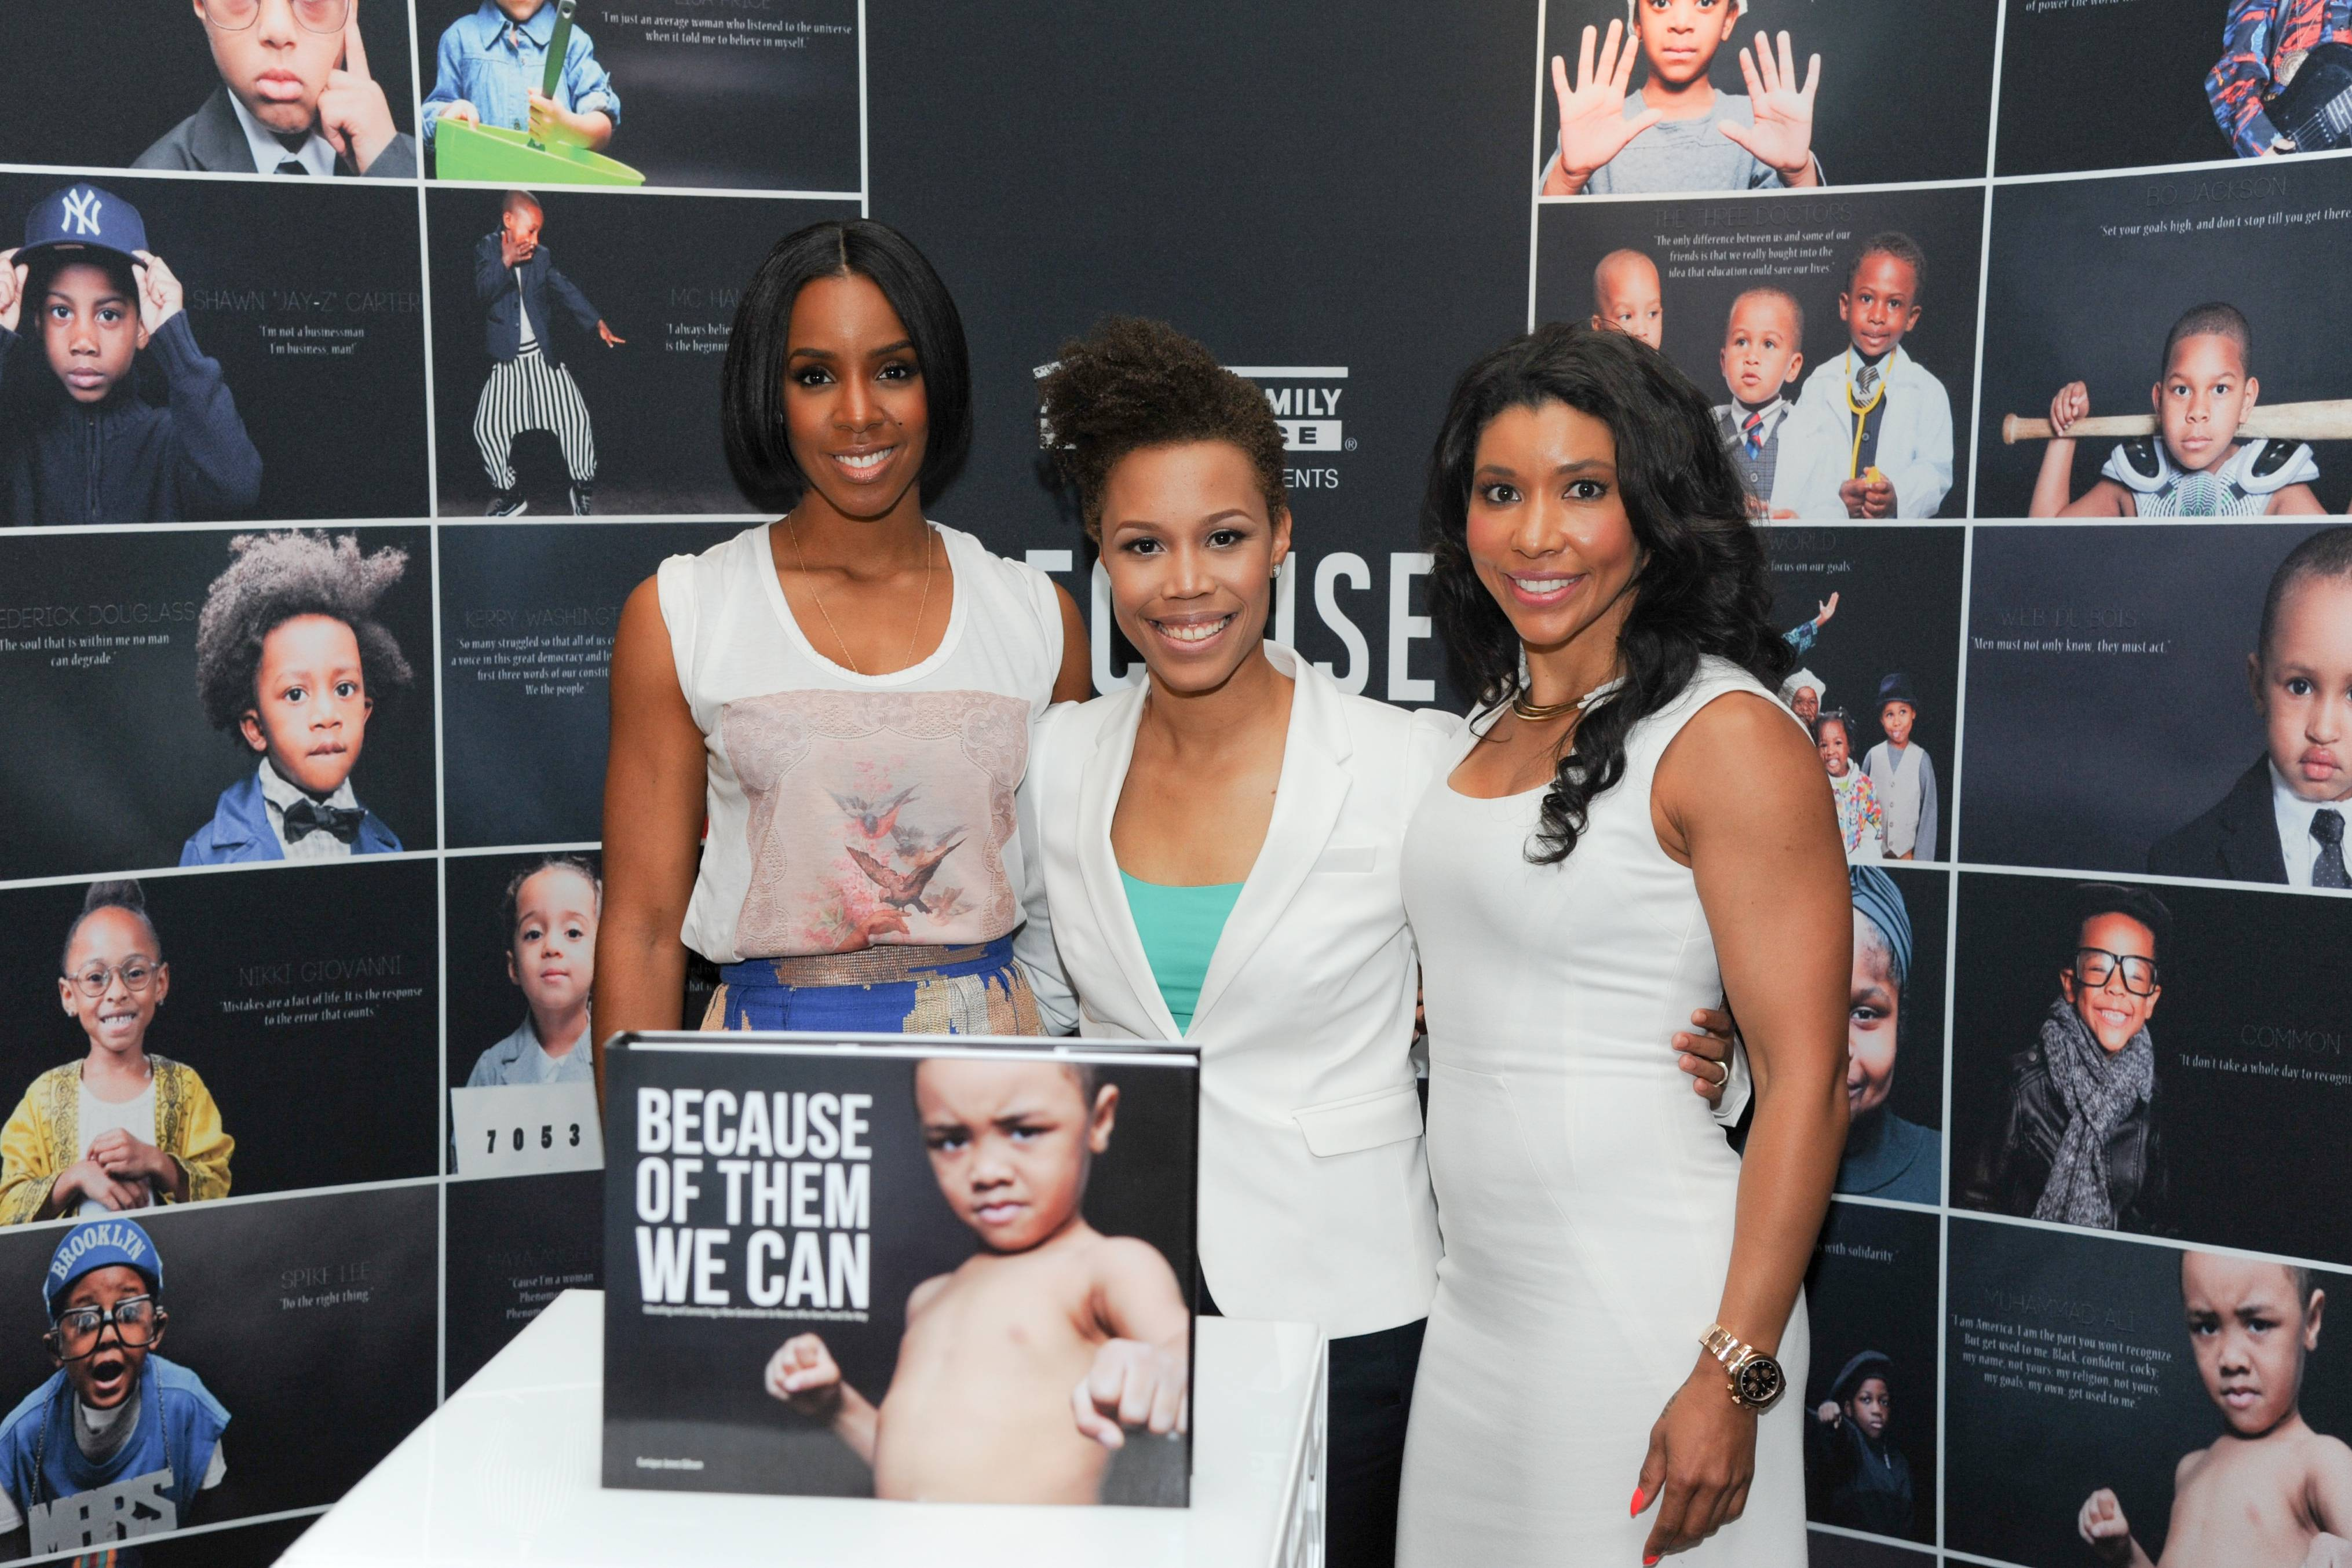 """Kelly Rowland, Eunique Jones, Jeanette Jenkins - Eunique Jones has been inspiring countless youth since launching her """"Because of Them, We Can"""" campaign in 2013 and connecting the next generation with the heroes who've helped pave their way. At the Leading Women Defined conference in Miami this week, Jones' Dream Wall helped to inspire all of us to continue doing good and to strive to be great role models for those who will rise up after us.   (Photo: Vladimir Banjanac for BET)"""